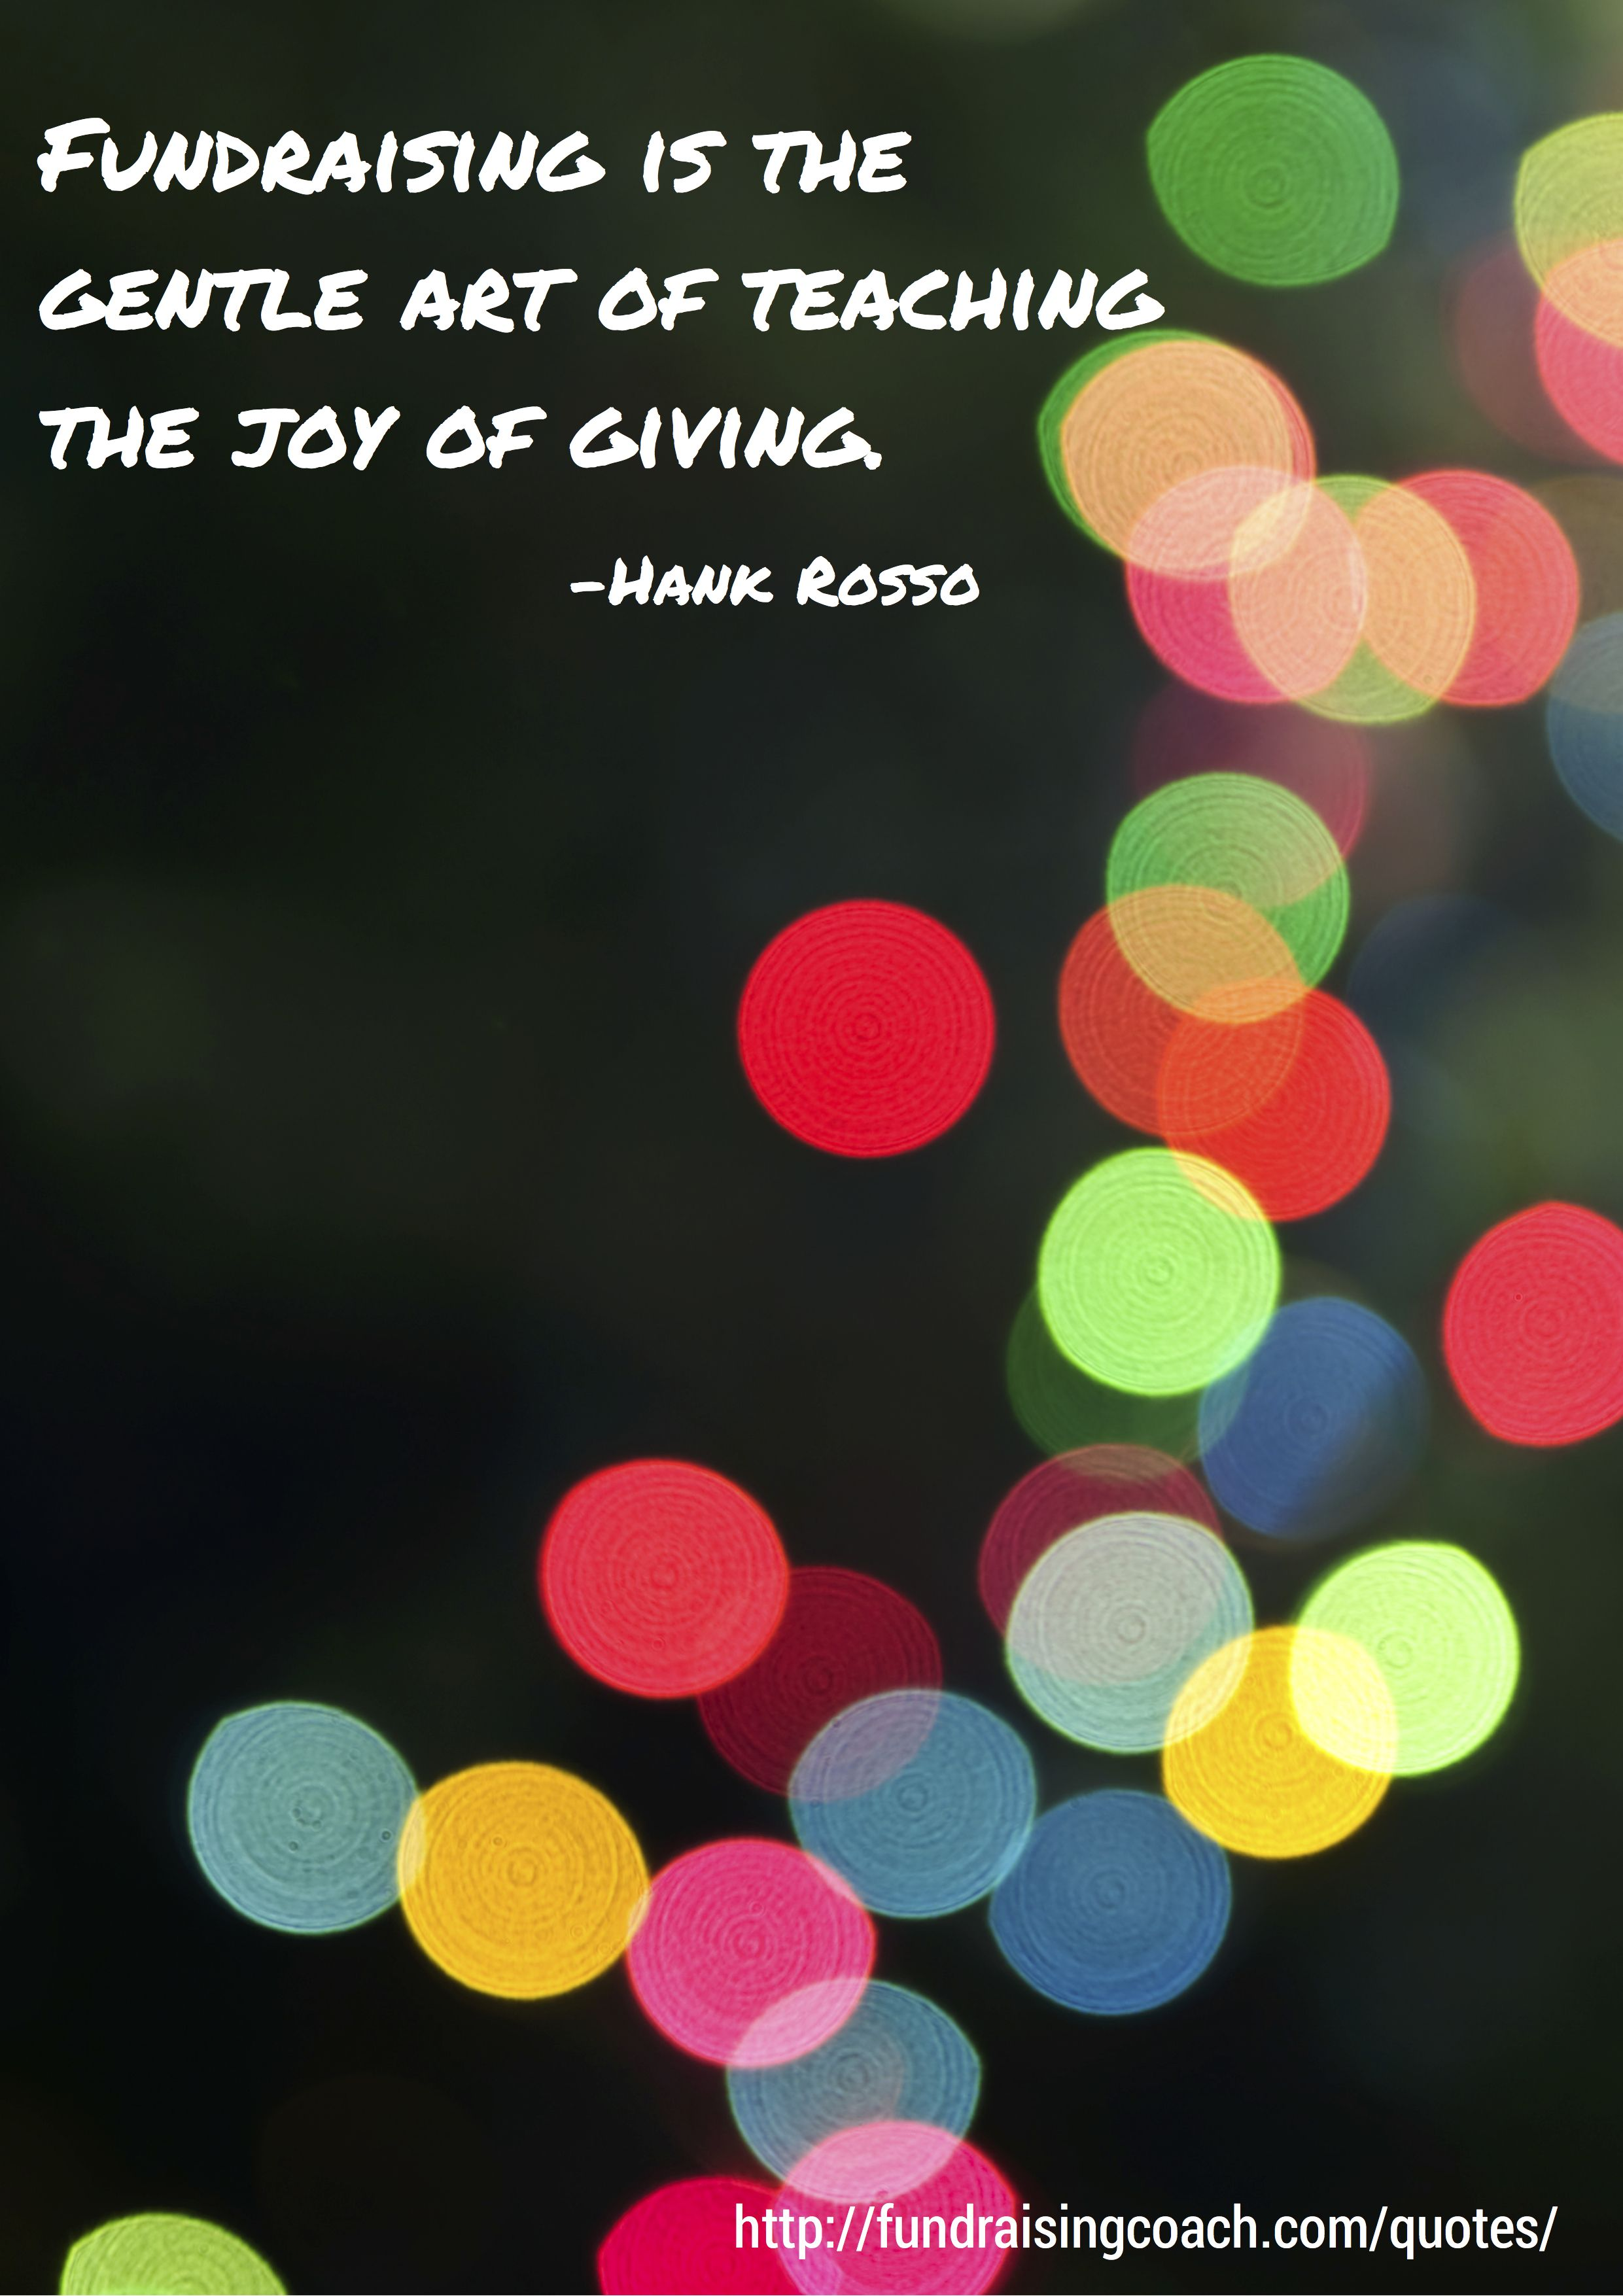 fundraising is the gentle art of teaching the joy of giving